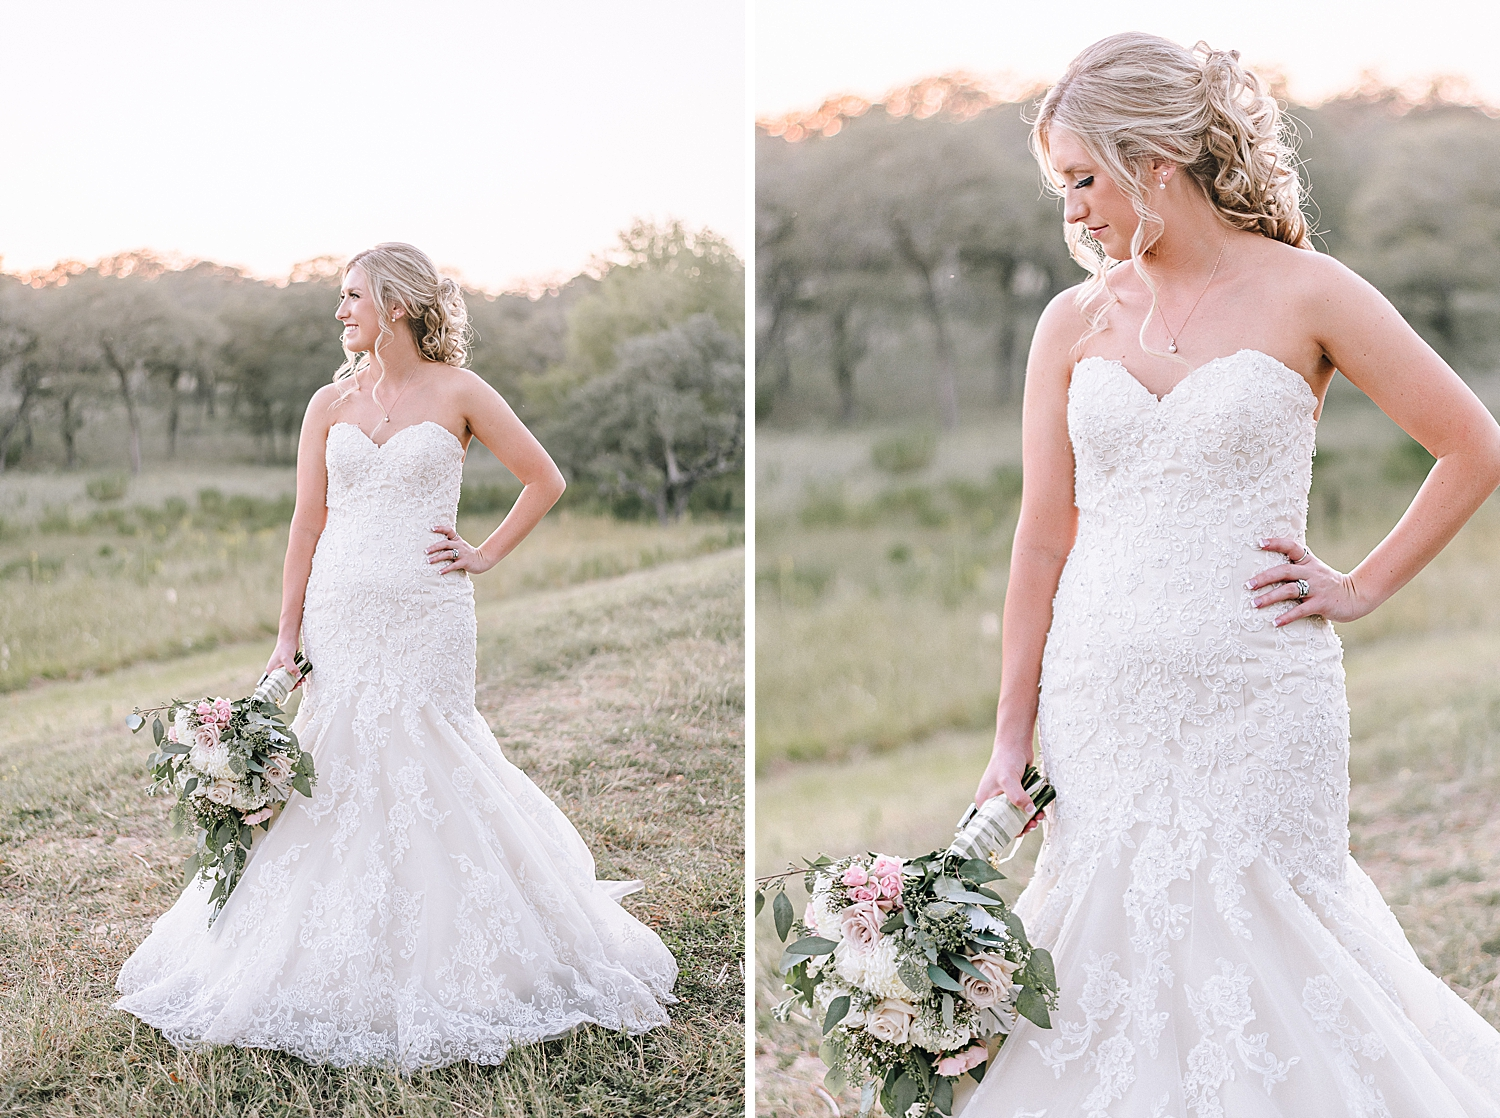 Rackler-Ranch-LaVernia-Texas-Wedding-Carly-Barton-Photography_0096.jpg